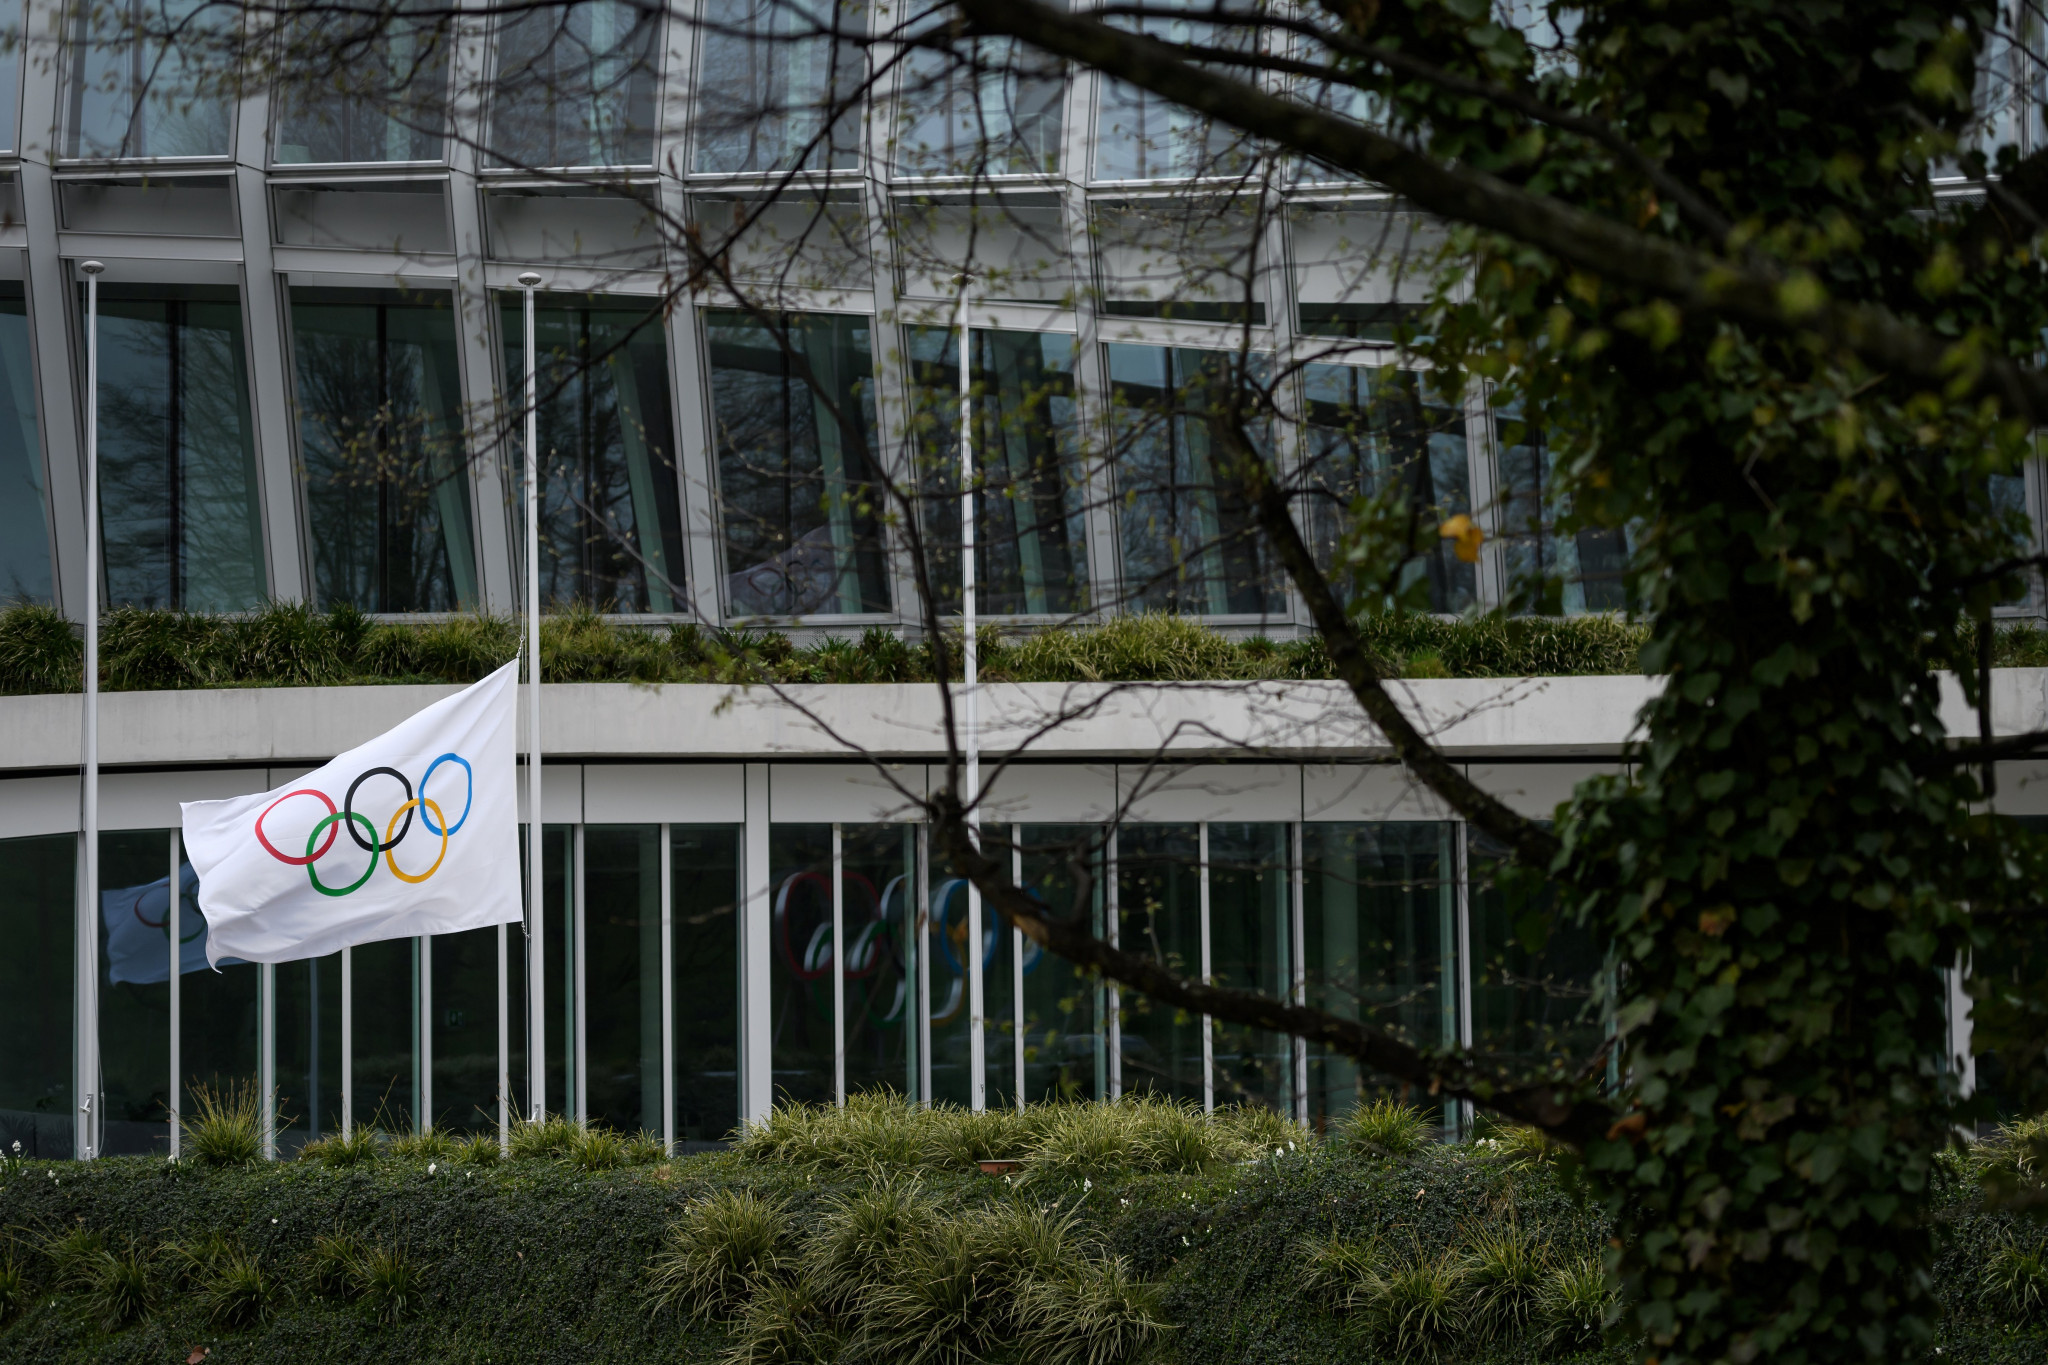 The International Olympic Committee will adopt a flexible approach to the election cycles of National Olympic Committees following the postponement of the Tokyo 2020 Olympic and Paralympic Games ©Getty Images